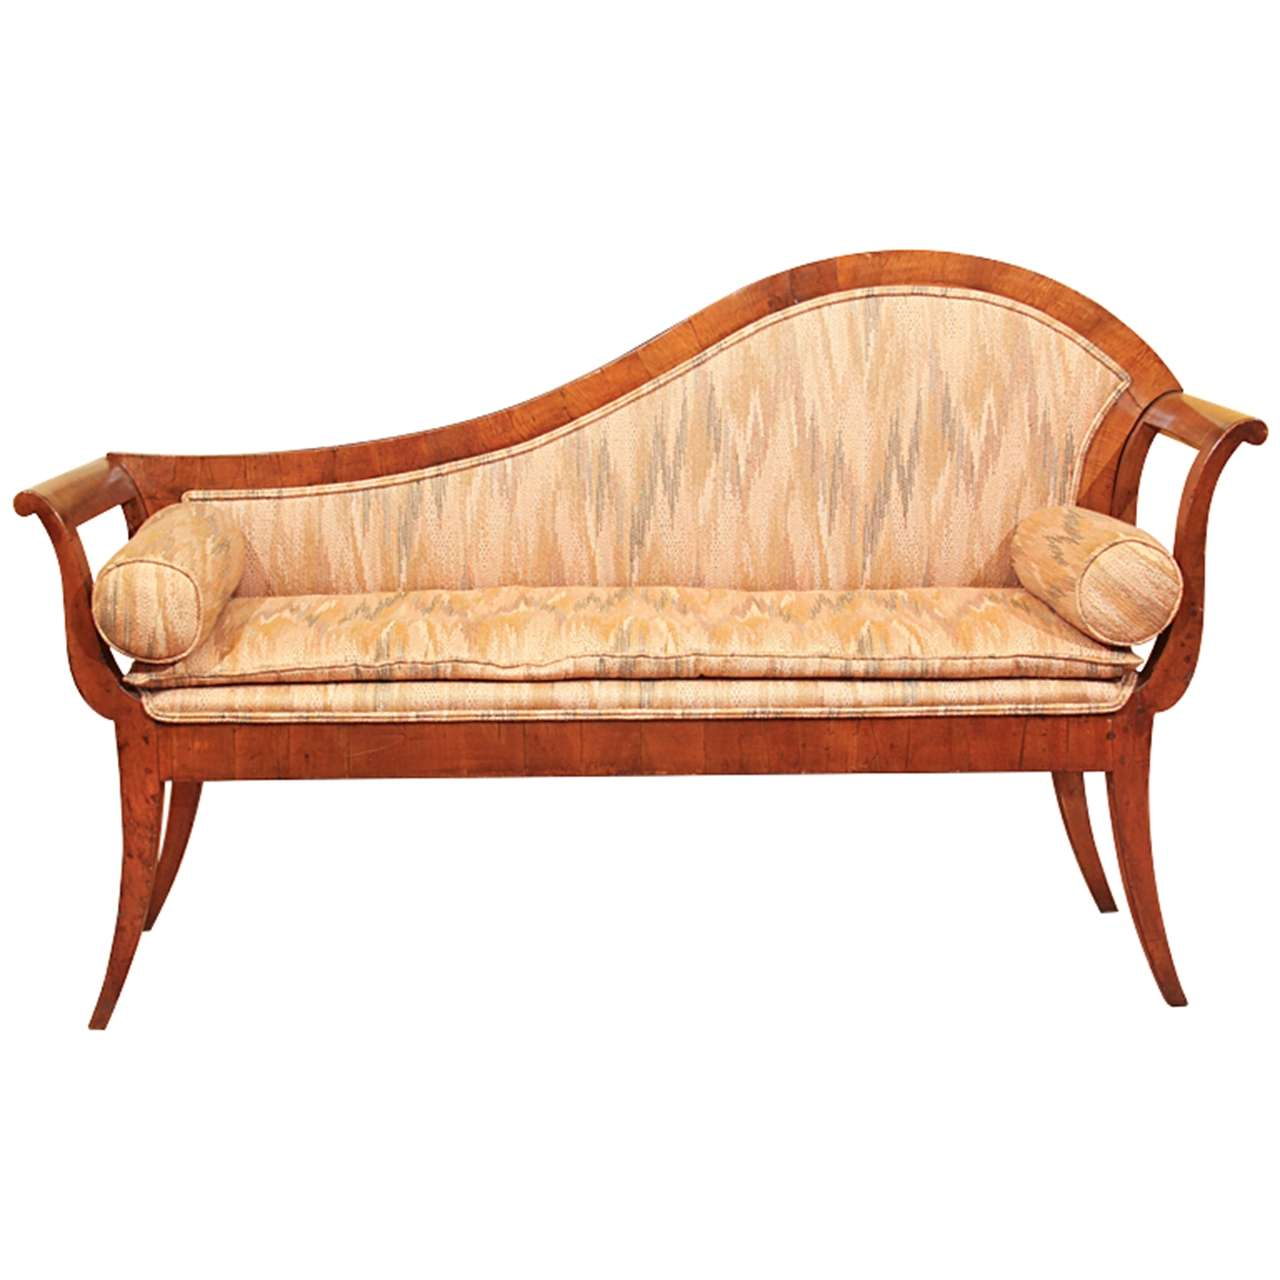 Biedermeier walnut recamier or chaise longue at 1stdibs for Chaise longue plastique